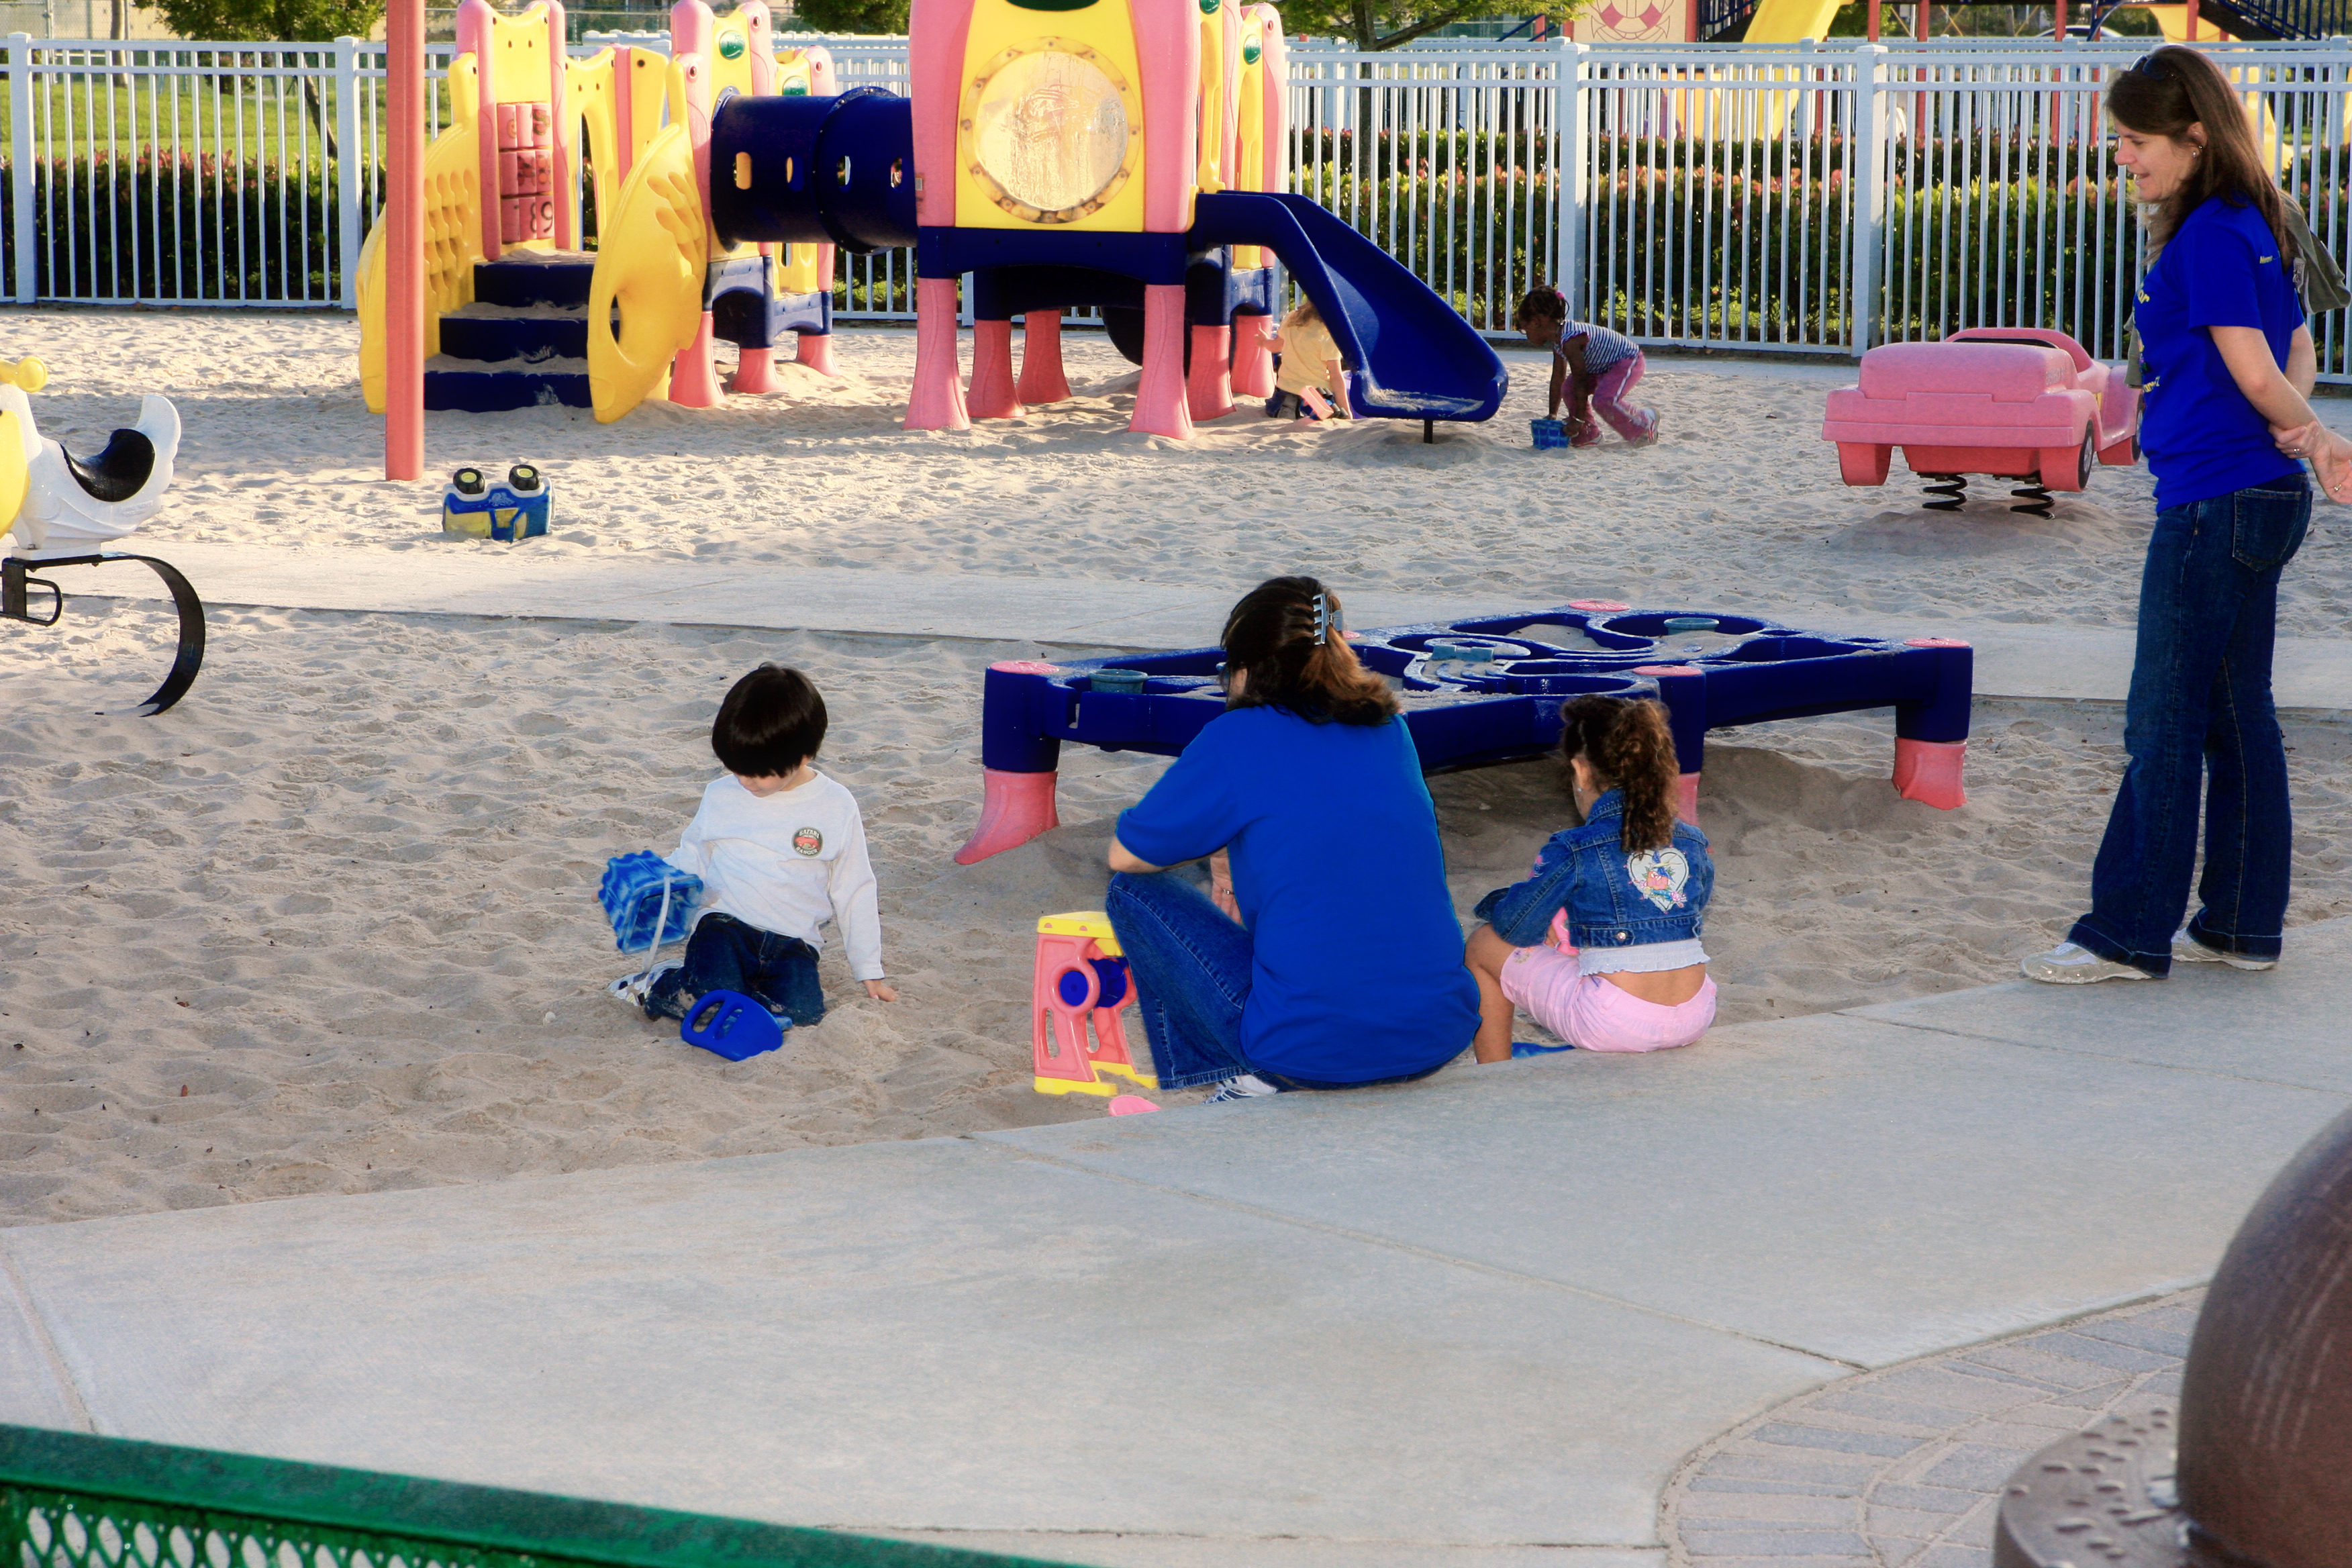 Kids playing in the sand on a playground while adults supervise